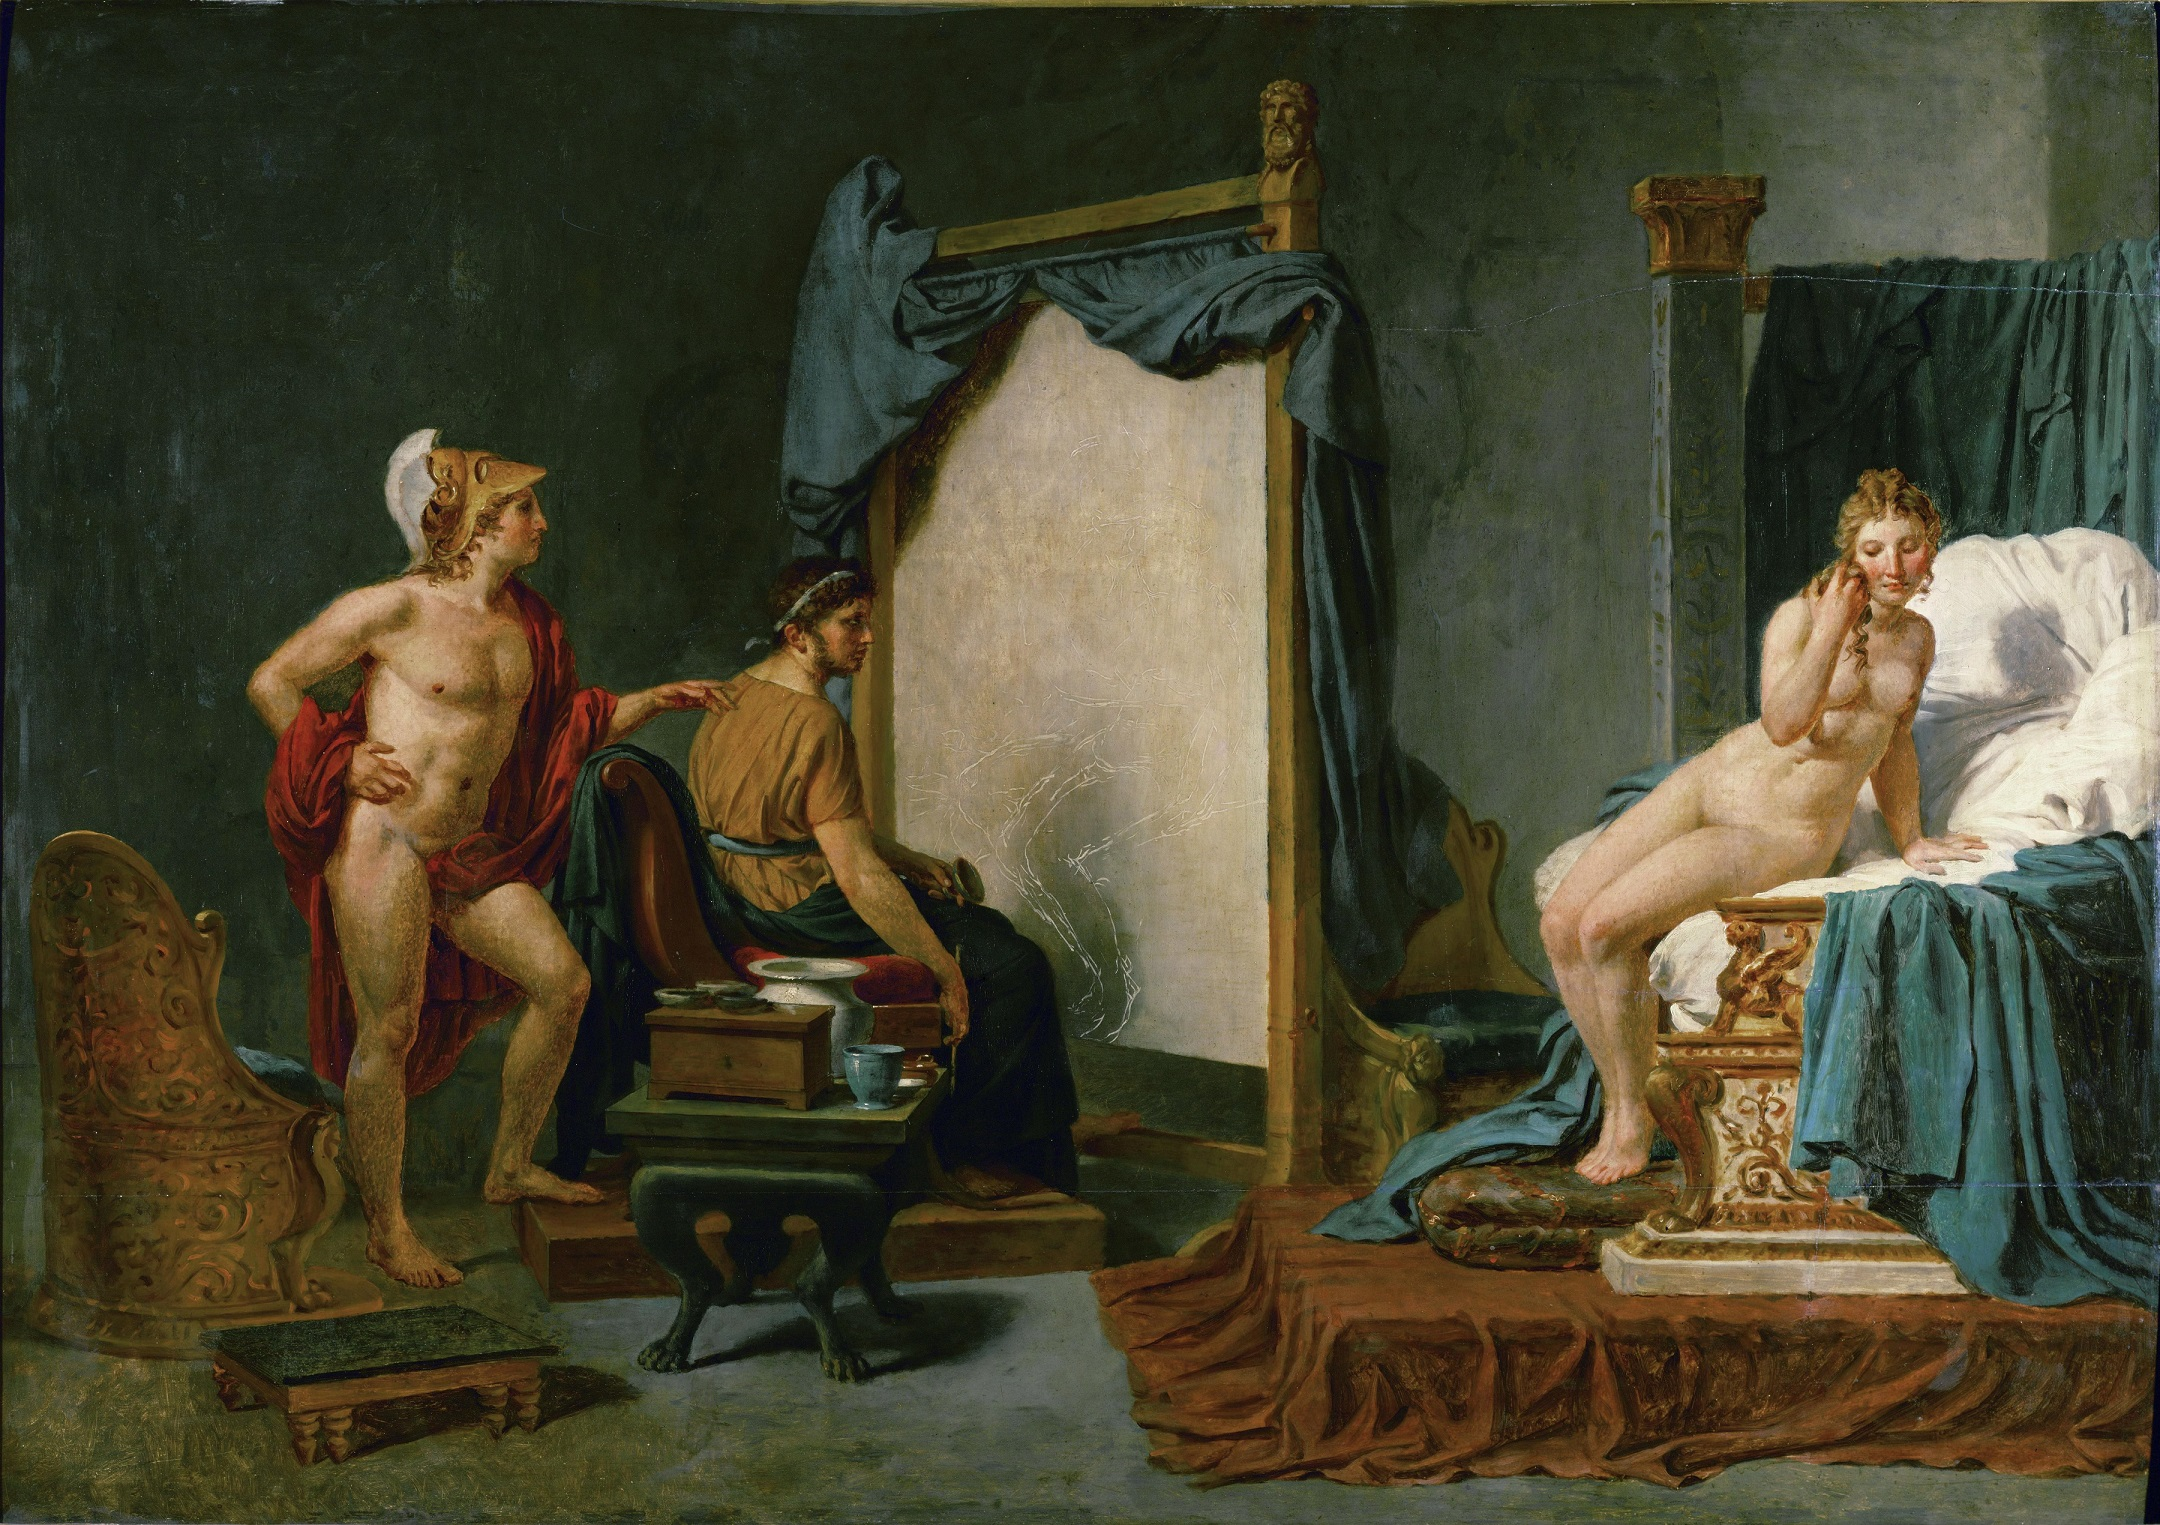 Jacques-Louis_David_-_Apelles_Painting_Campaspe_in_the_Presence_of_Alexander_the_Great